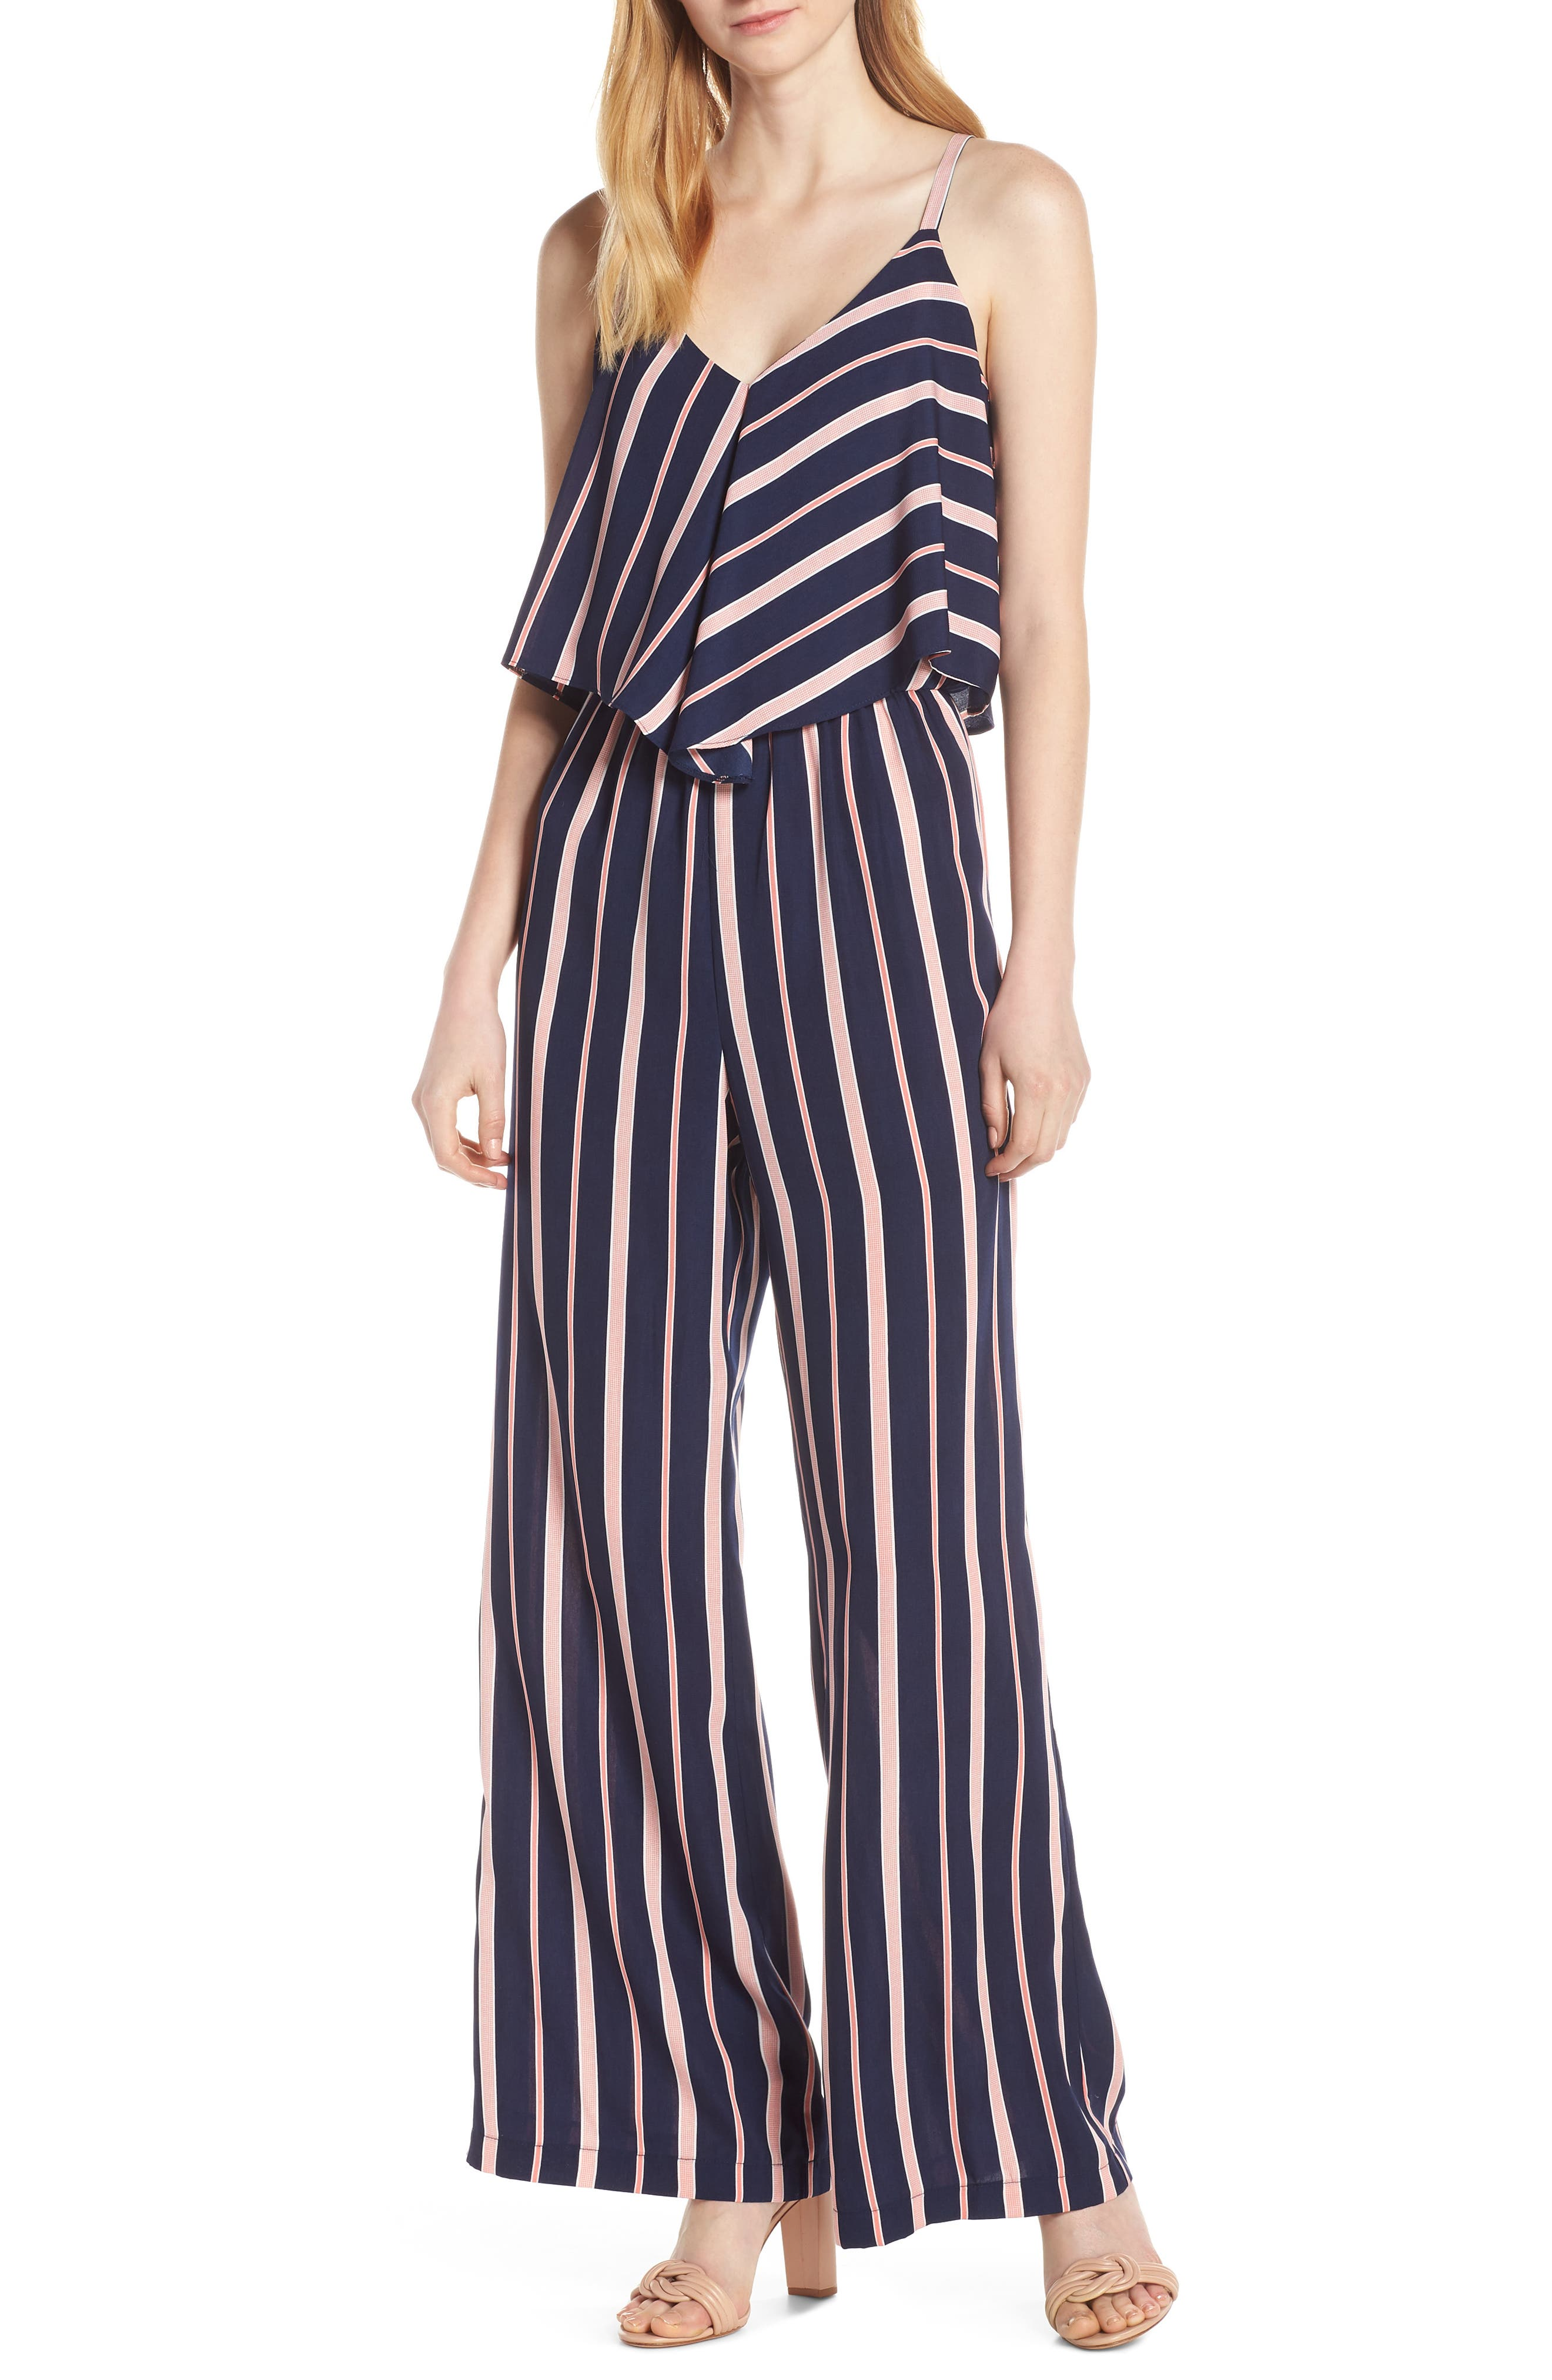 70s Jumpsuit | Disco Jumpsuits – Sequin, Striped, Gold, White, Black Womens Charles Henry Stripe Popover Jumpsuit Size X-Small - Blue $88.00 AT vintagedancer.com